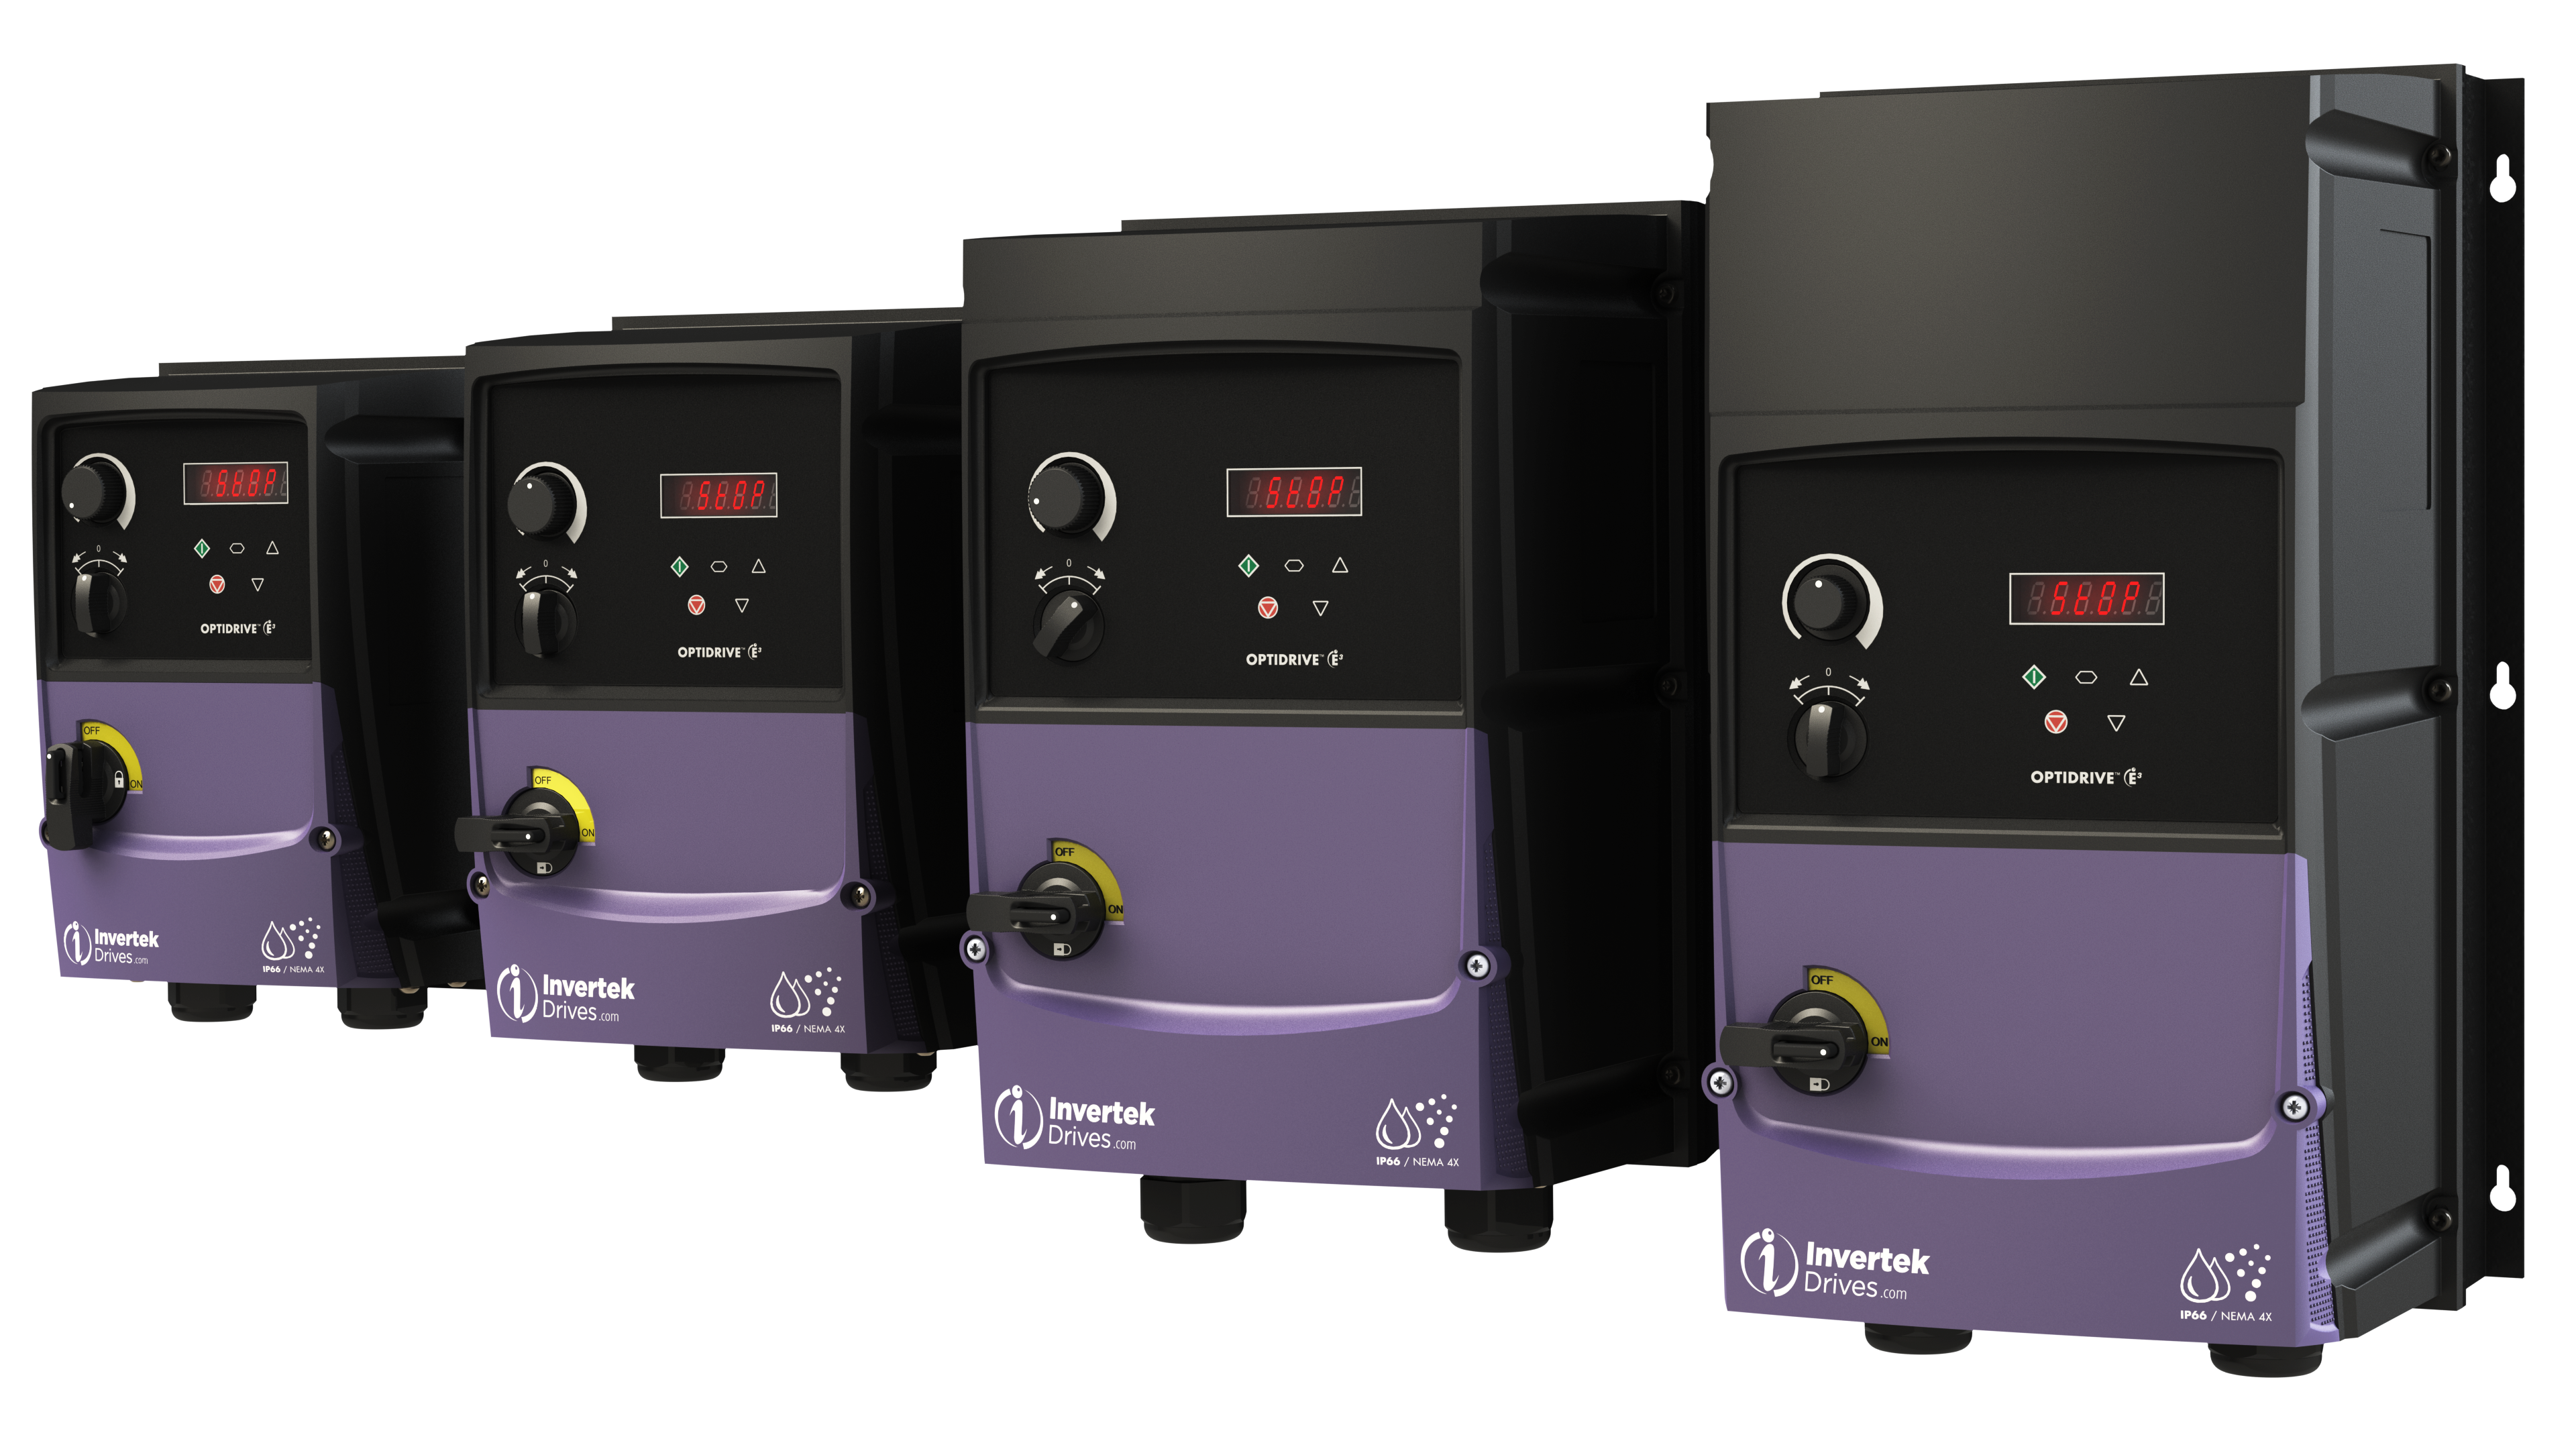 Outdoor Range Of Variable Frequency Drives Launched At Hannover Messe Drive Electronics Hobby Industry Sectors Said Rhydian Welson Sales And Marketing Director Invertek A Leading Global Innovator Manufacturer Vfd Technology